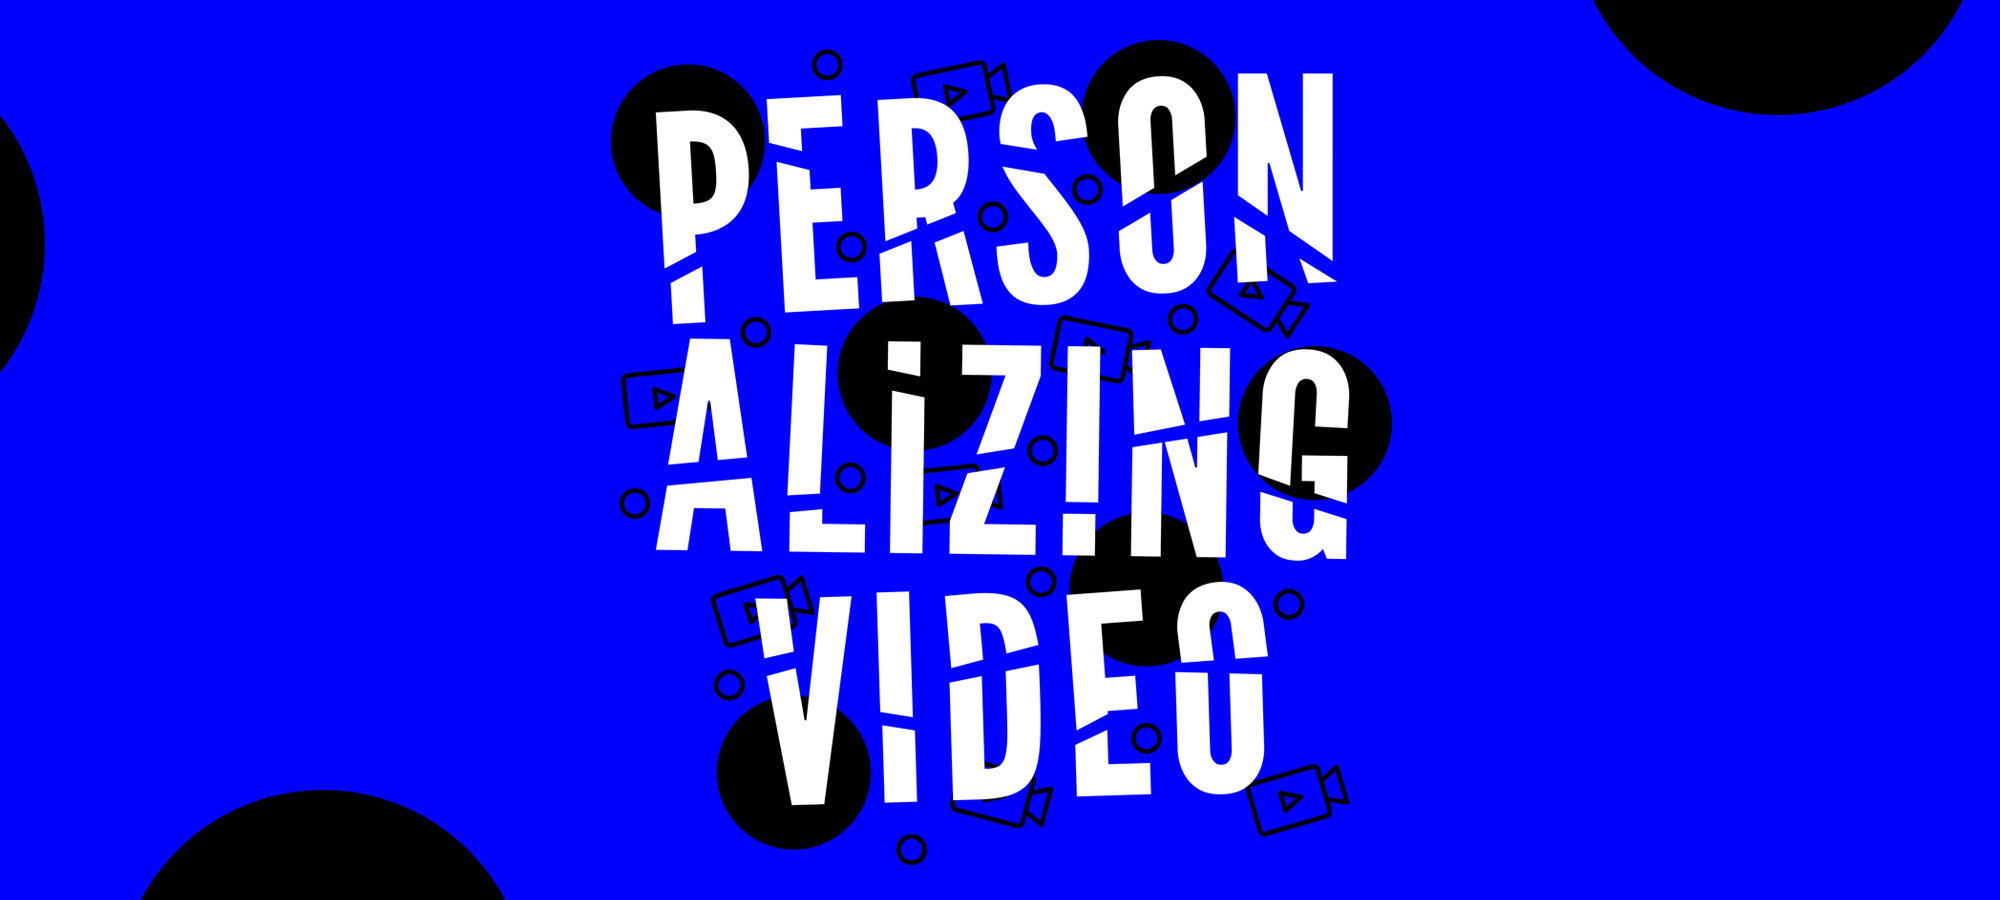 personalizing-Video